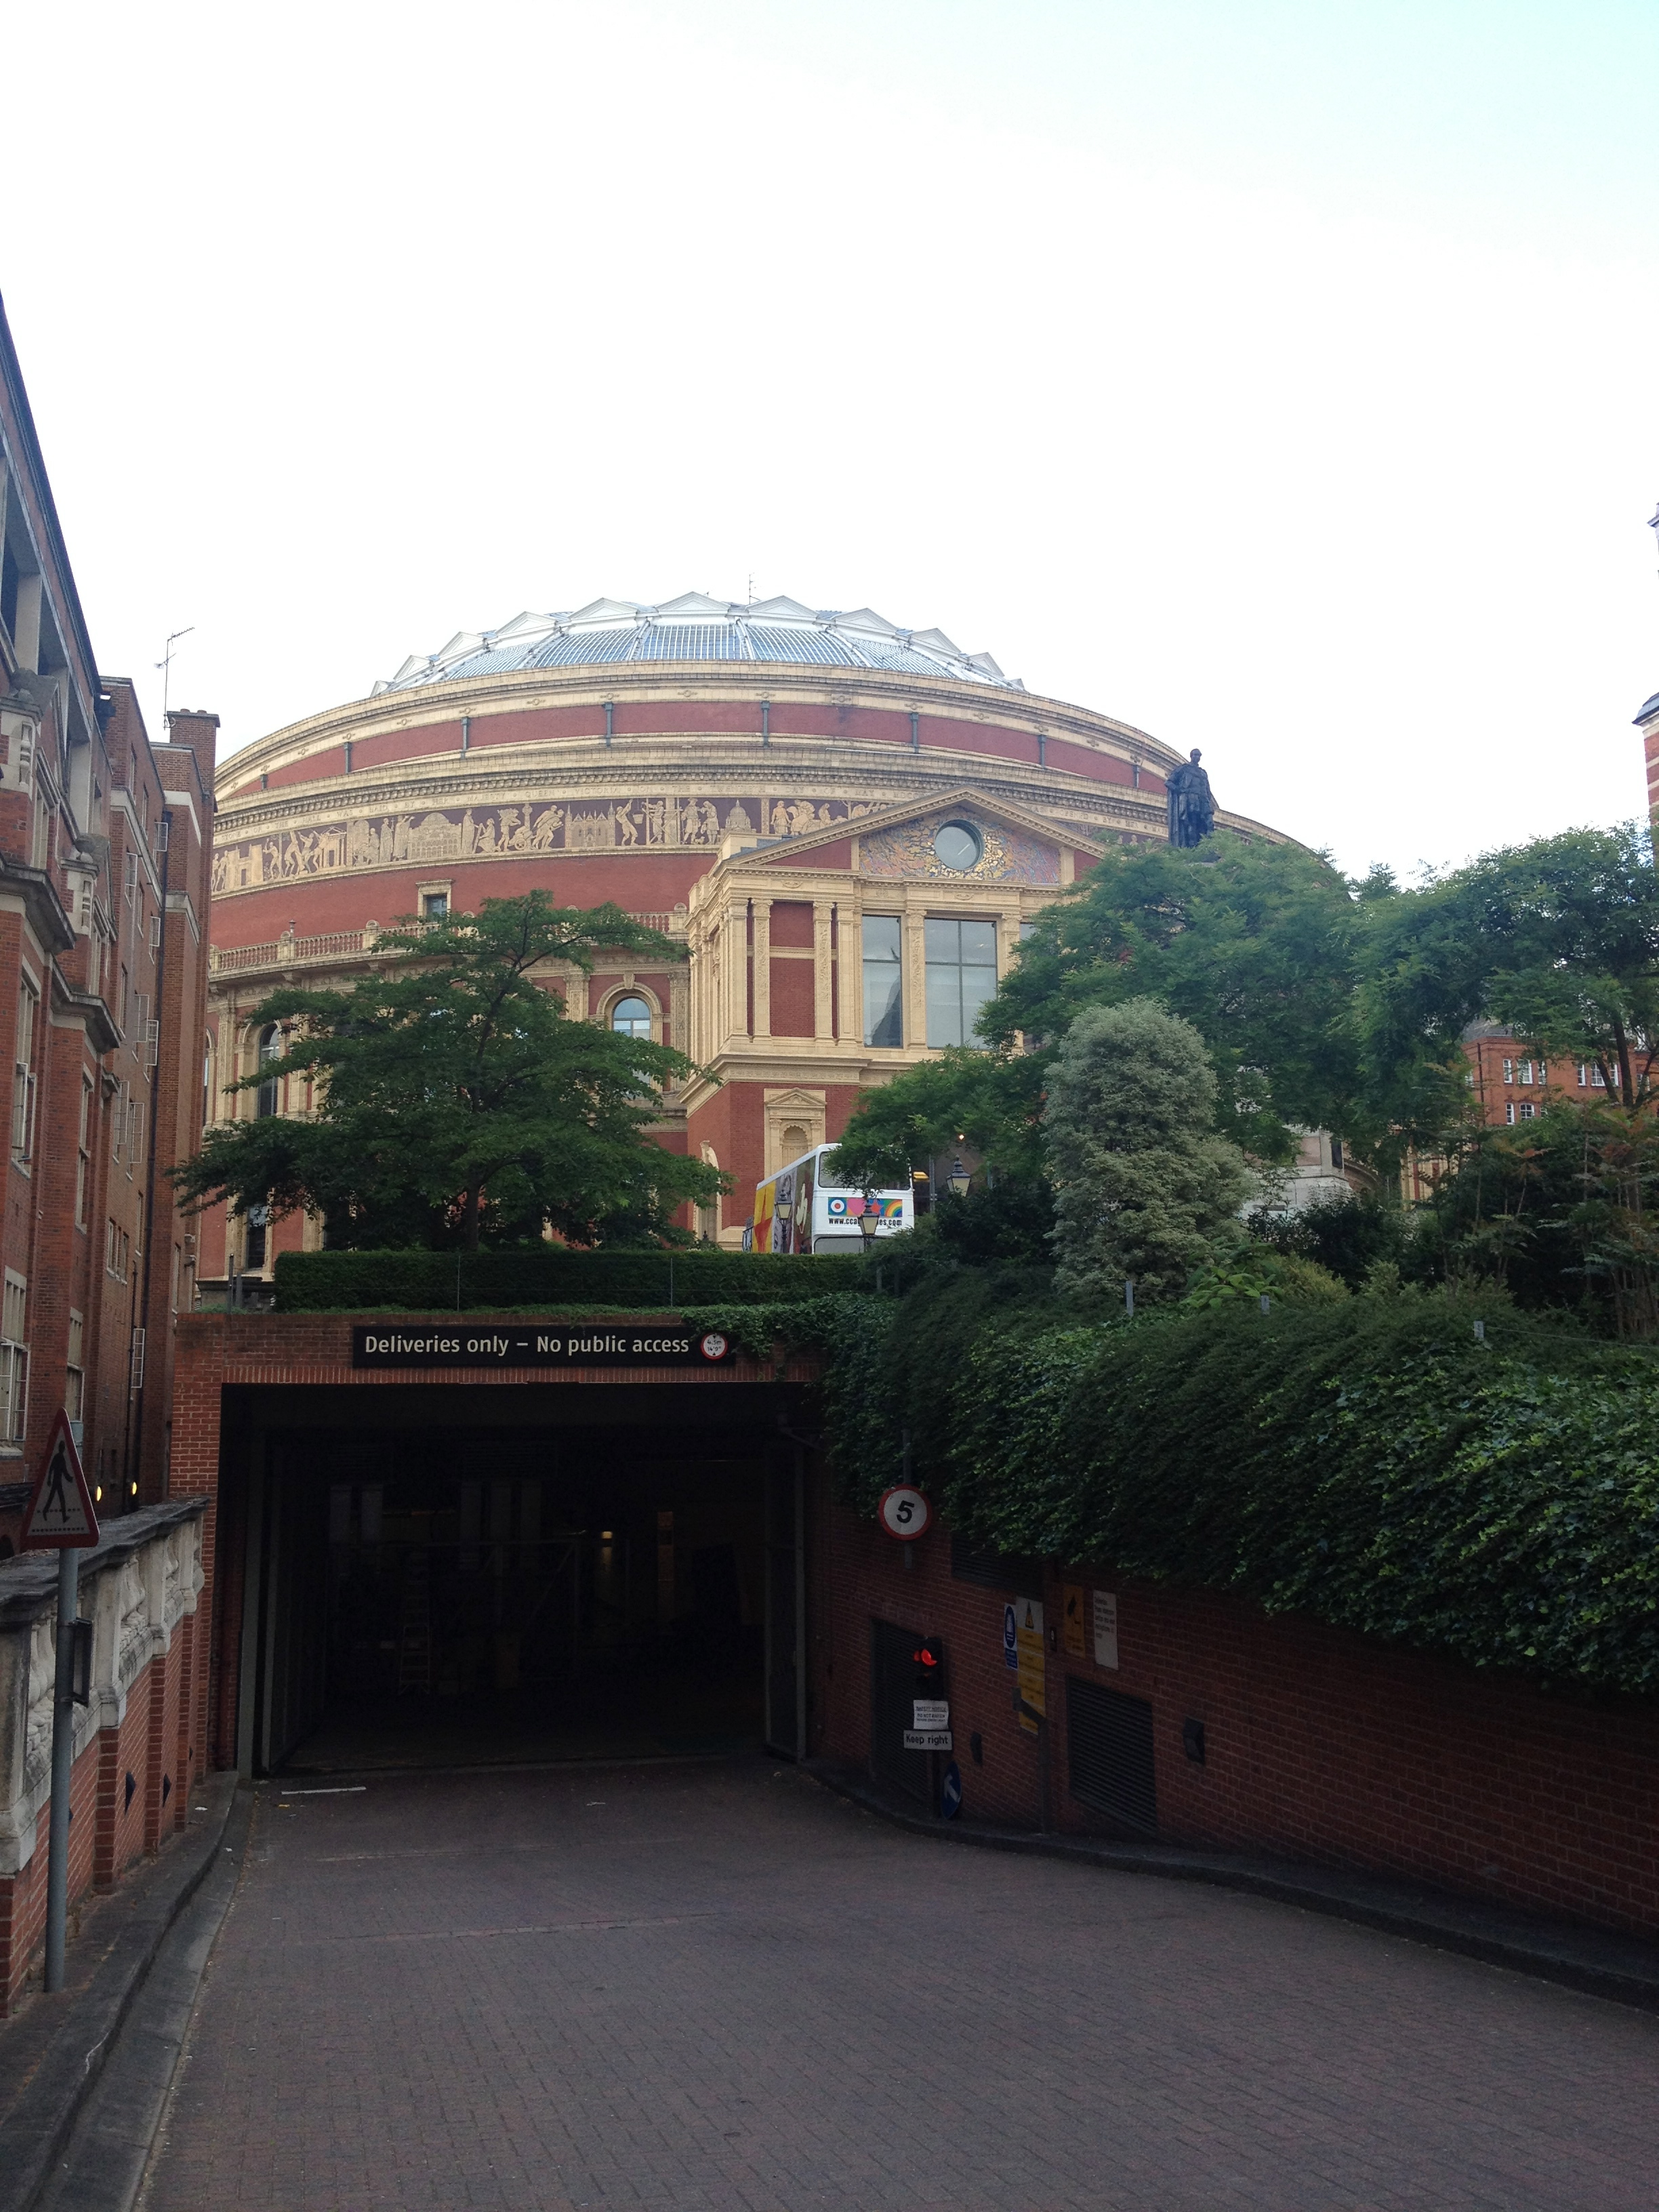 Royal Albert Hall Event